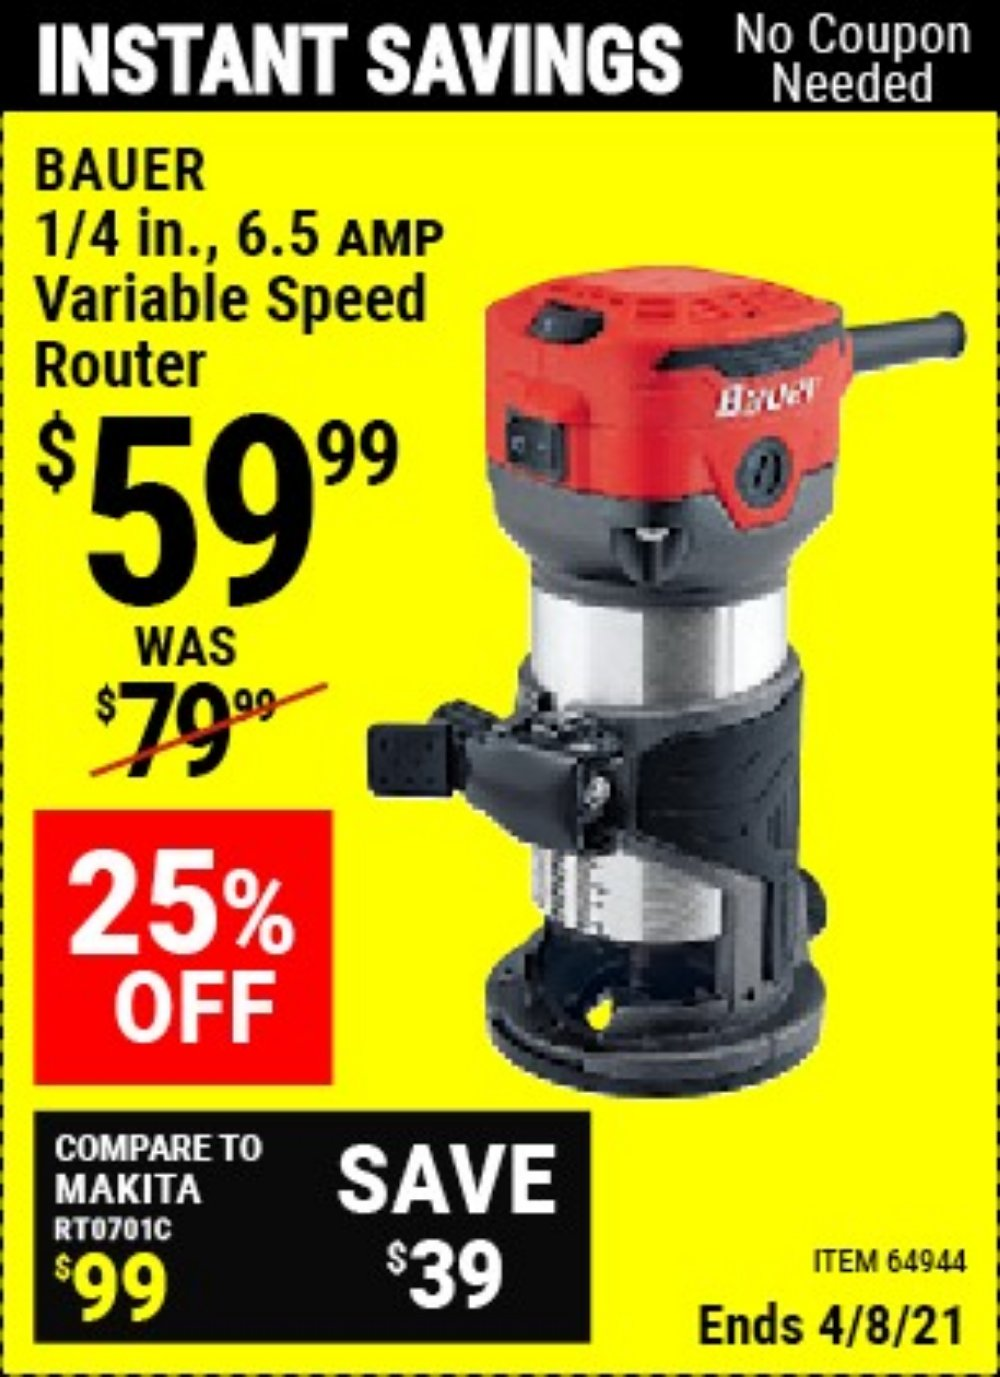 Harbor Freight Coupon, HF Coupons - 64944